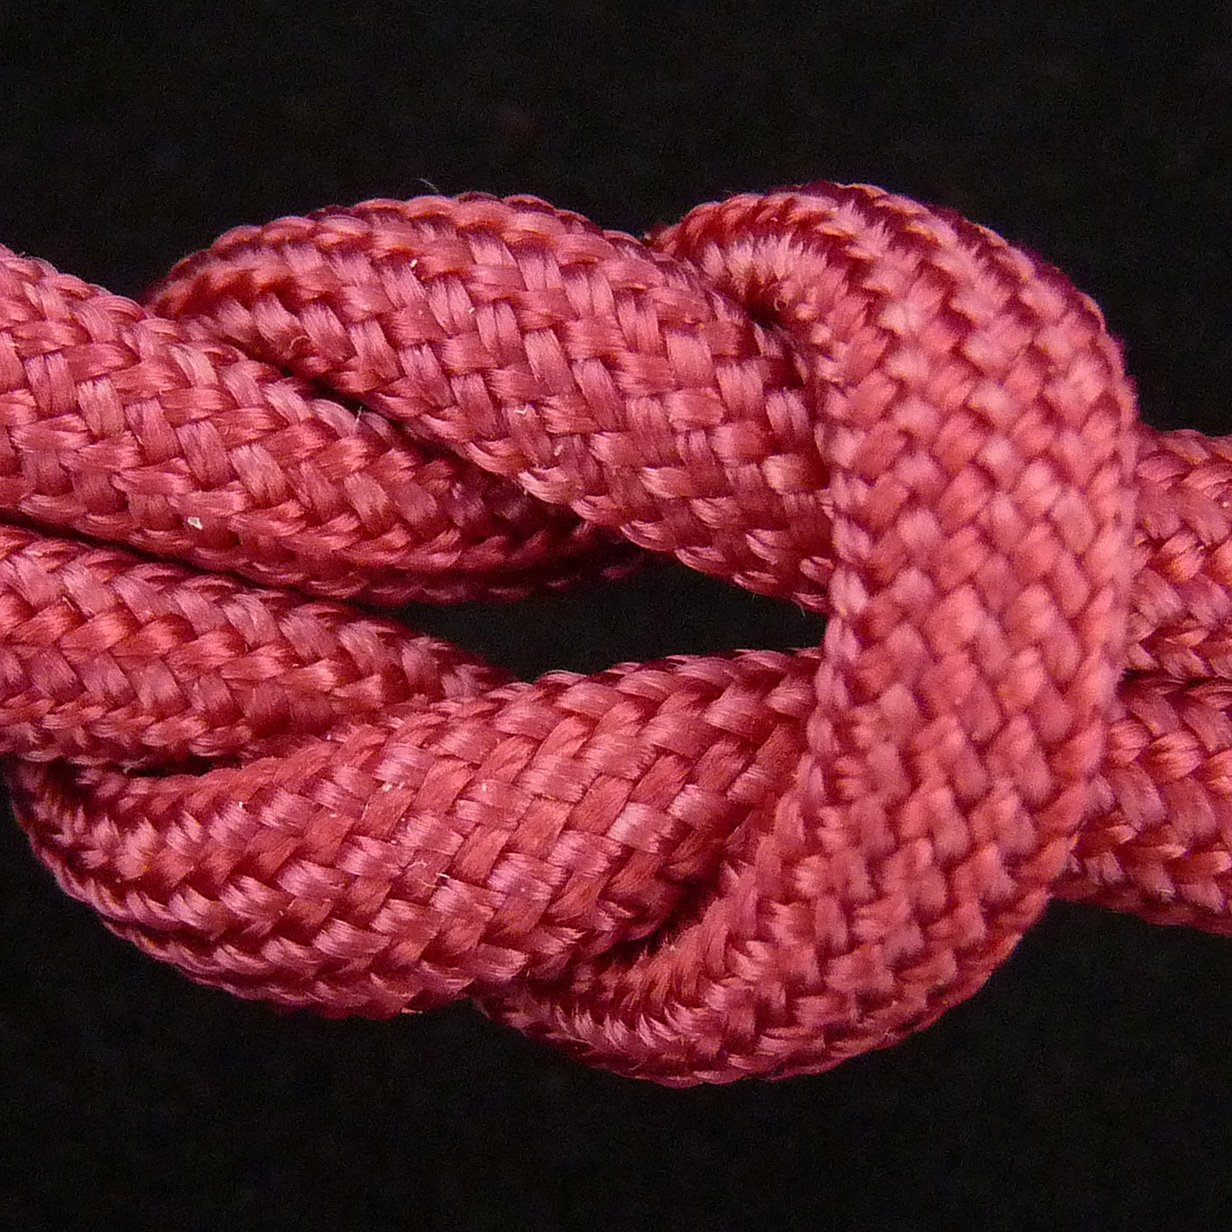 MilSpec Paracord Red 8-Strand 55 ft. Hank. Guaranteed MIL-C-5040H Compliant, Military Survival 550 Parachute Cord, Type III. Made in USA. 100% Nylon, 600 Lb. Break Strength, 2 Free eBooks. by Paracord 550 Mil-Spec (TM) (Image #10)